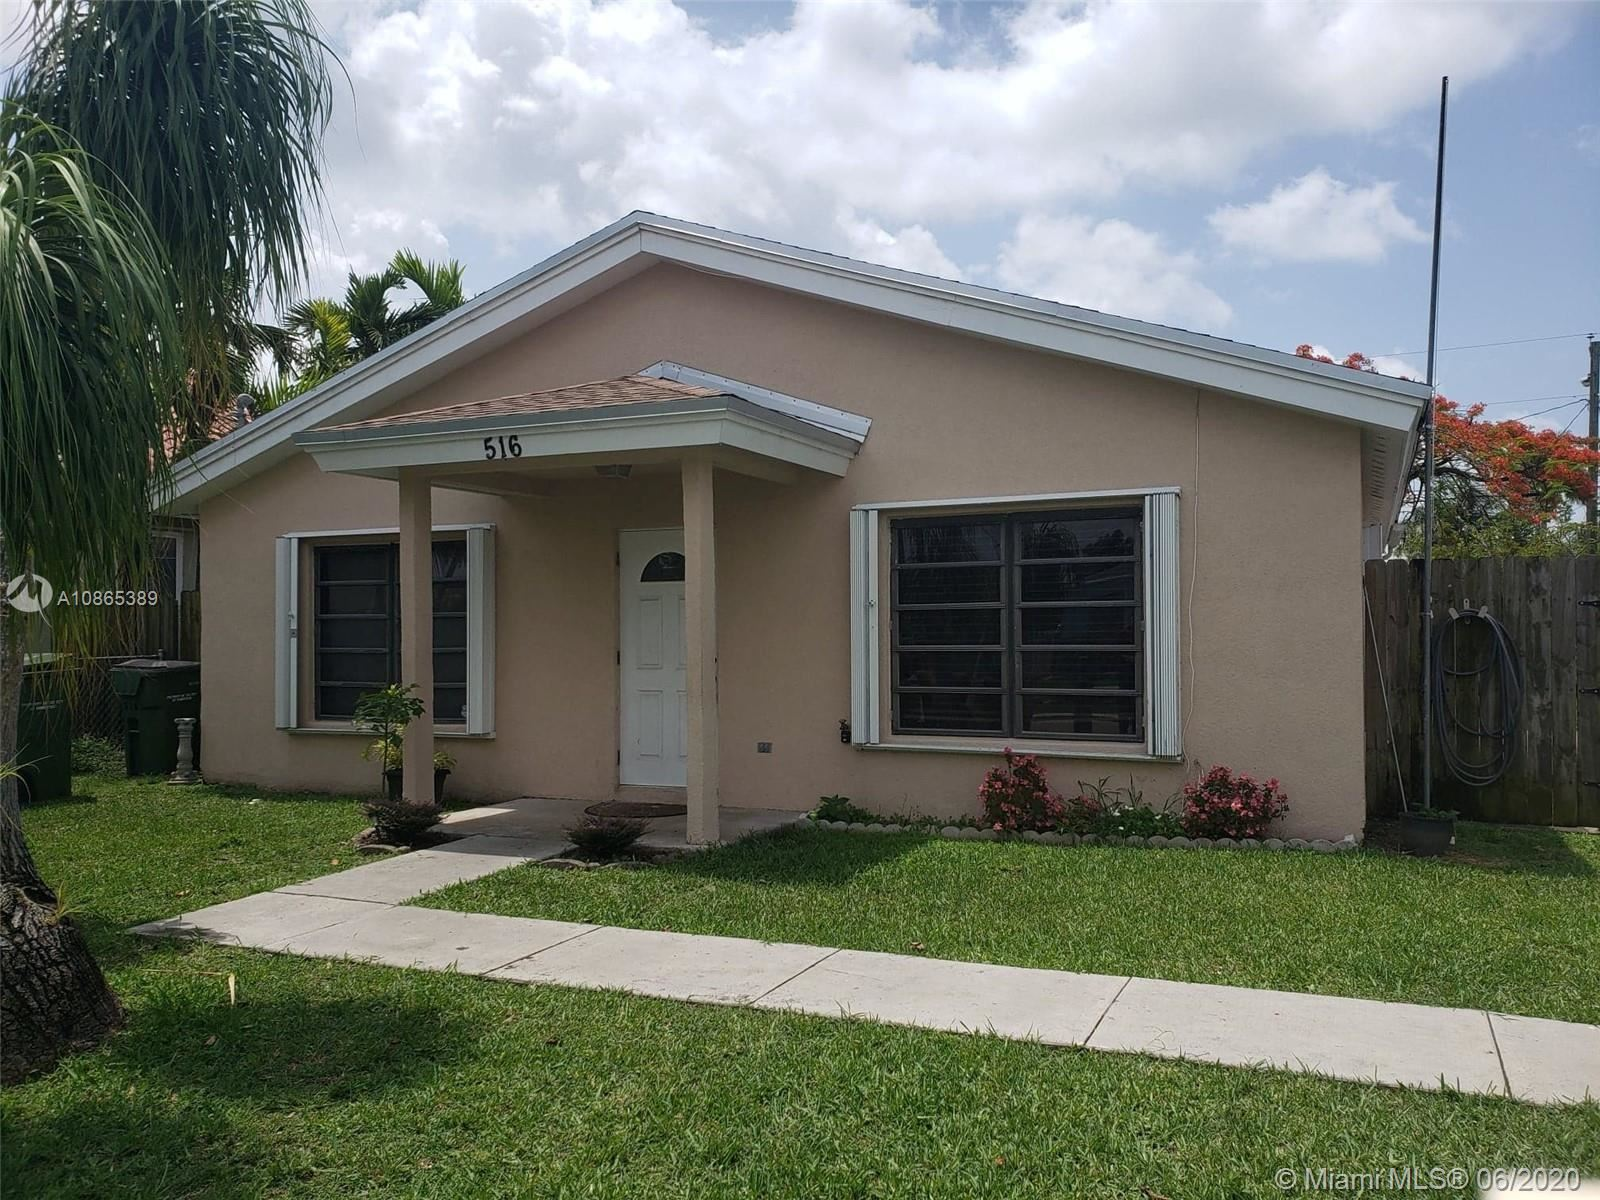 Photo of 516 NW 7th St, Homestead, FL 33030 (MLS # A10865389)